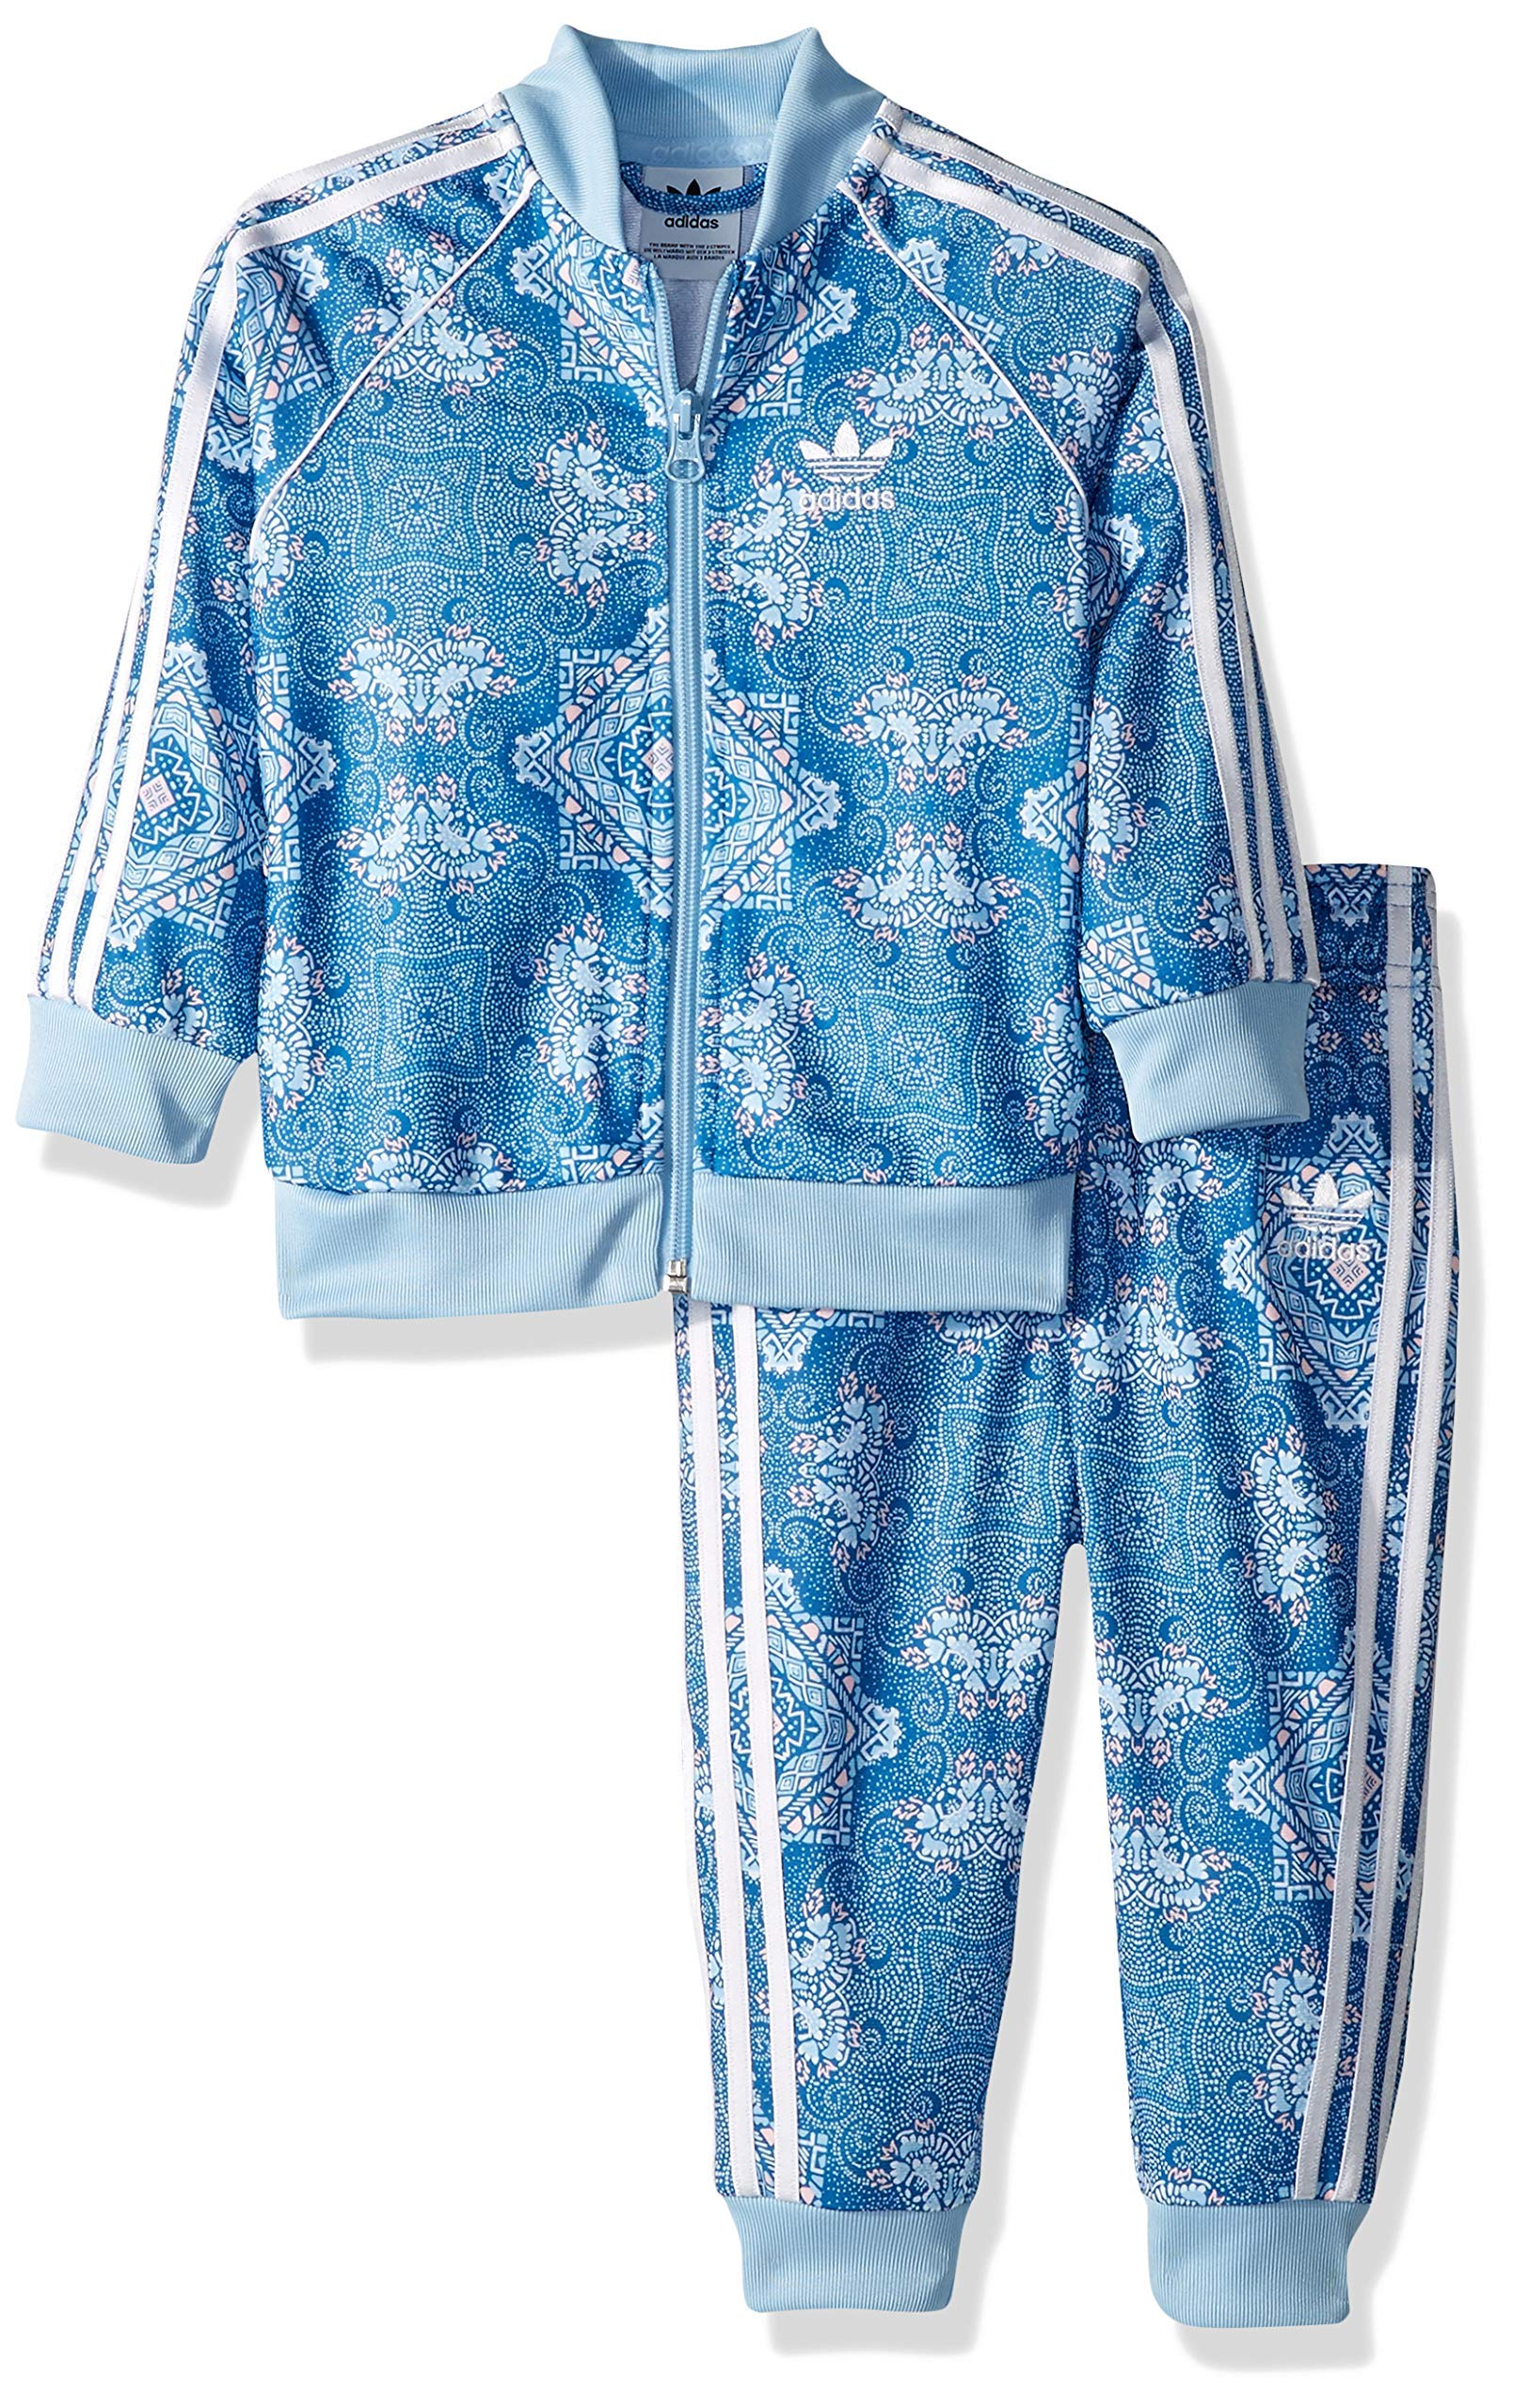 adidas Originals Kids' Toddler Culture Clash SST Track Suit Set, multi, 4T by adidas Originals